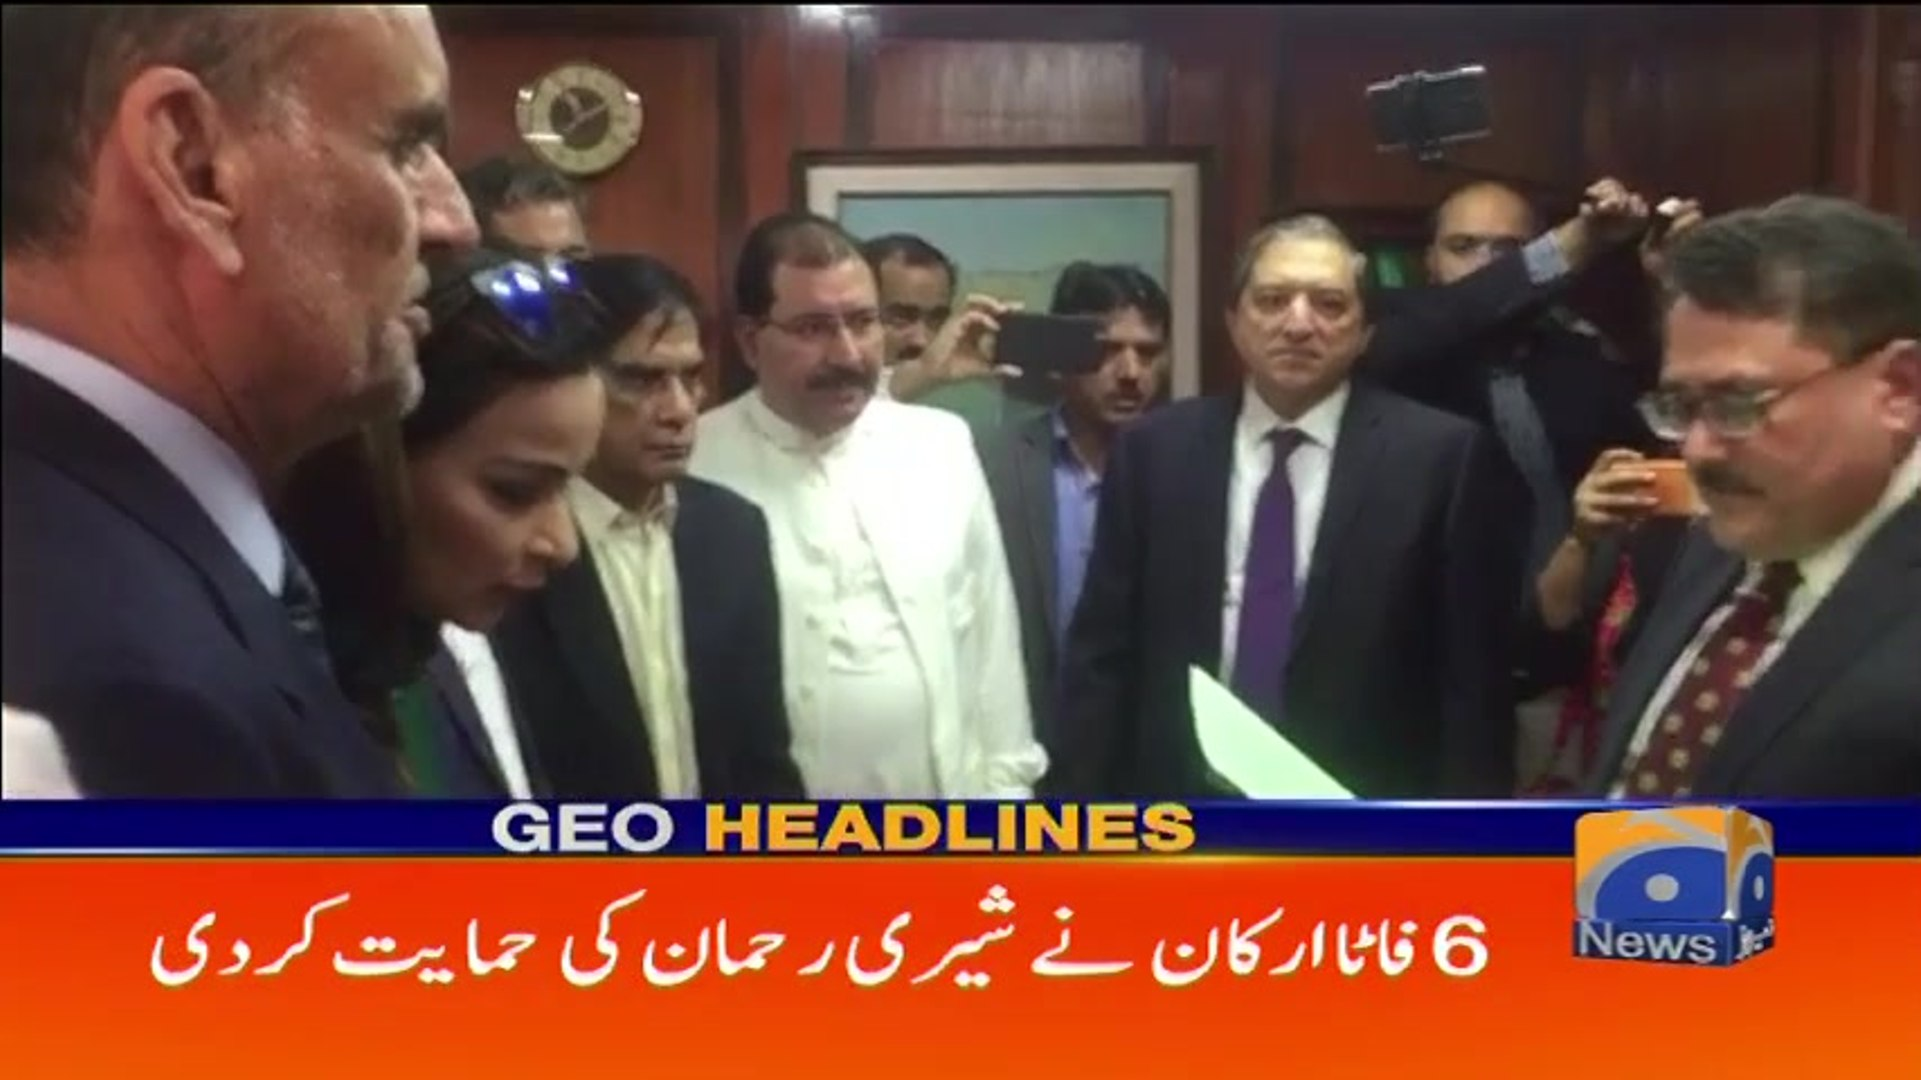 Geo Headlines - 08 AM - 16 March 2018